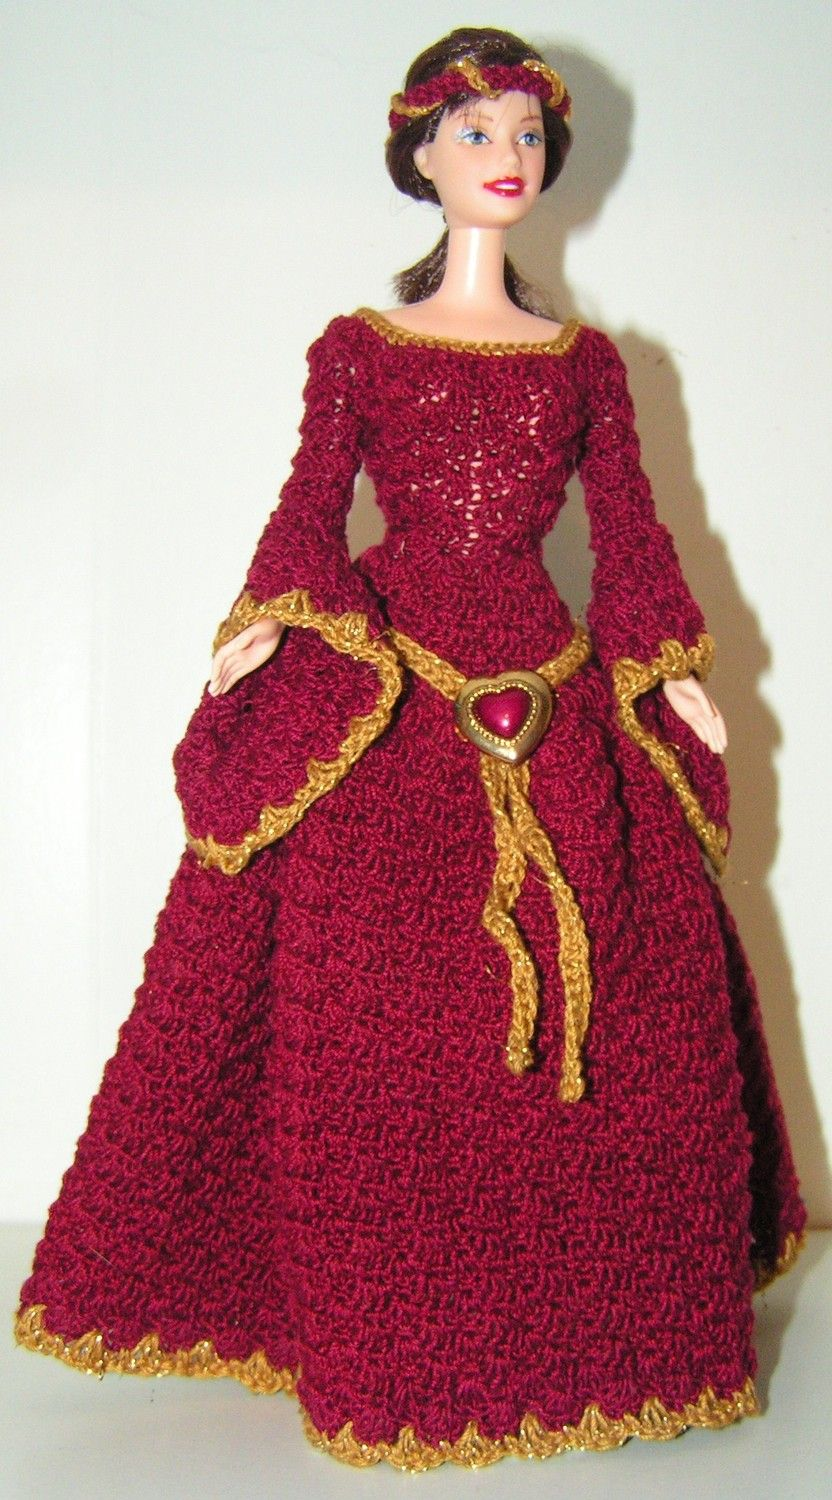 Crochet pattern barbie guinevere 495 via etsy b barbie barbie dress crochet pattern bankloansurffo Image collections